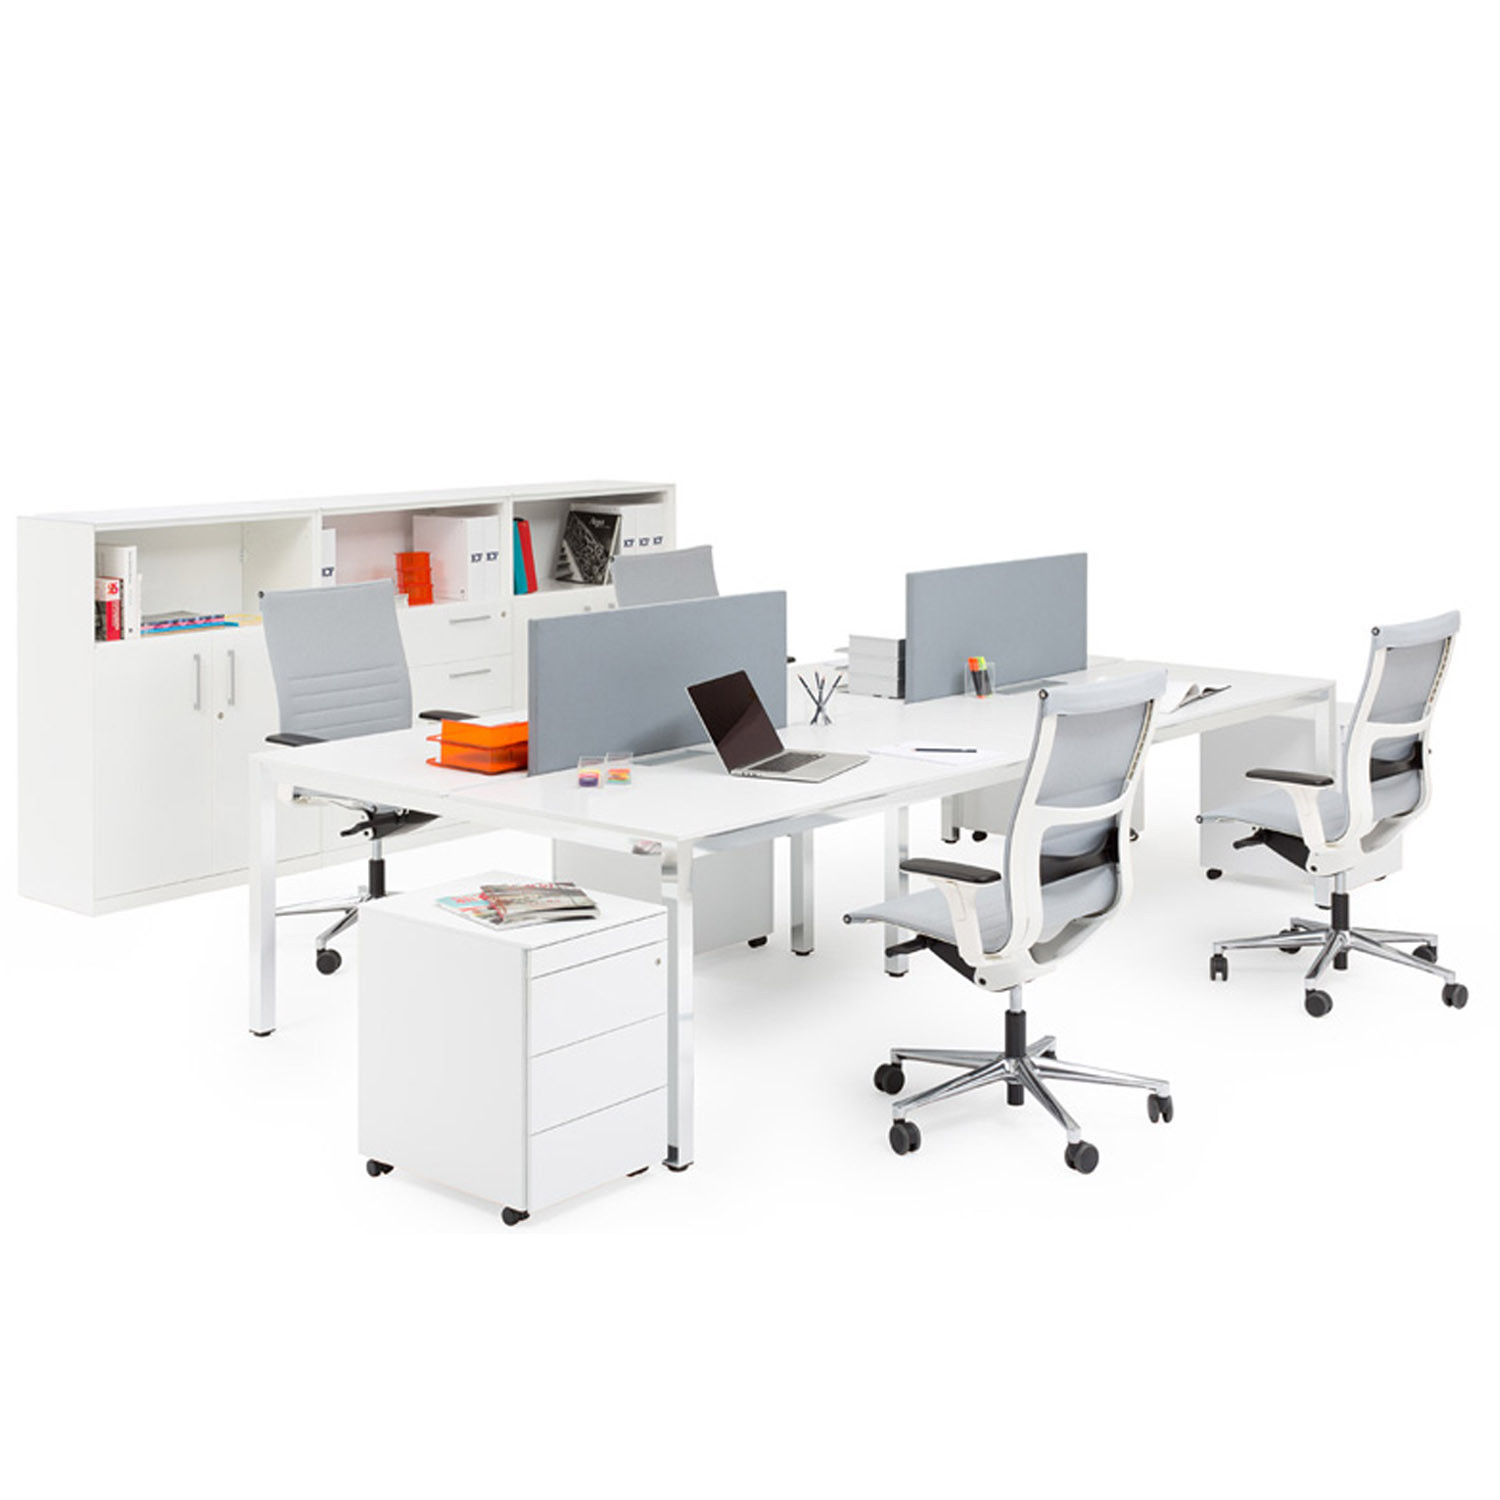 P50 Task System Bench Desks